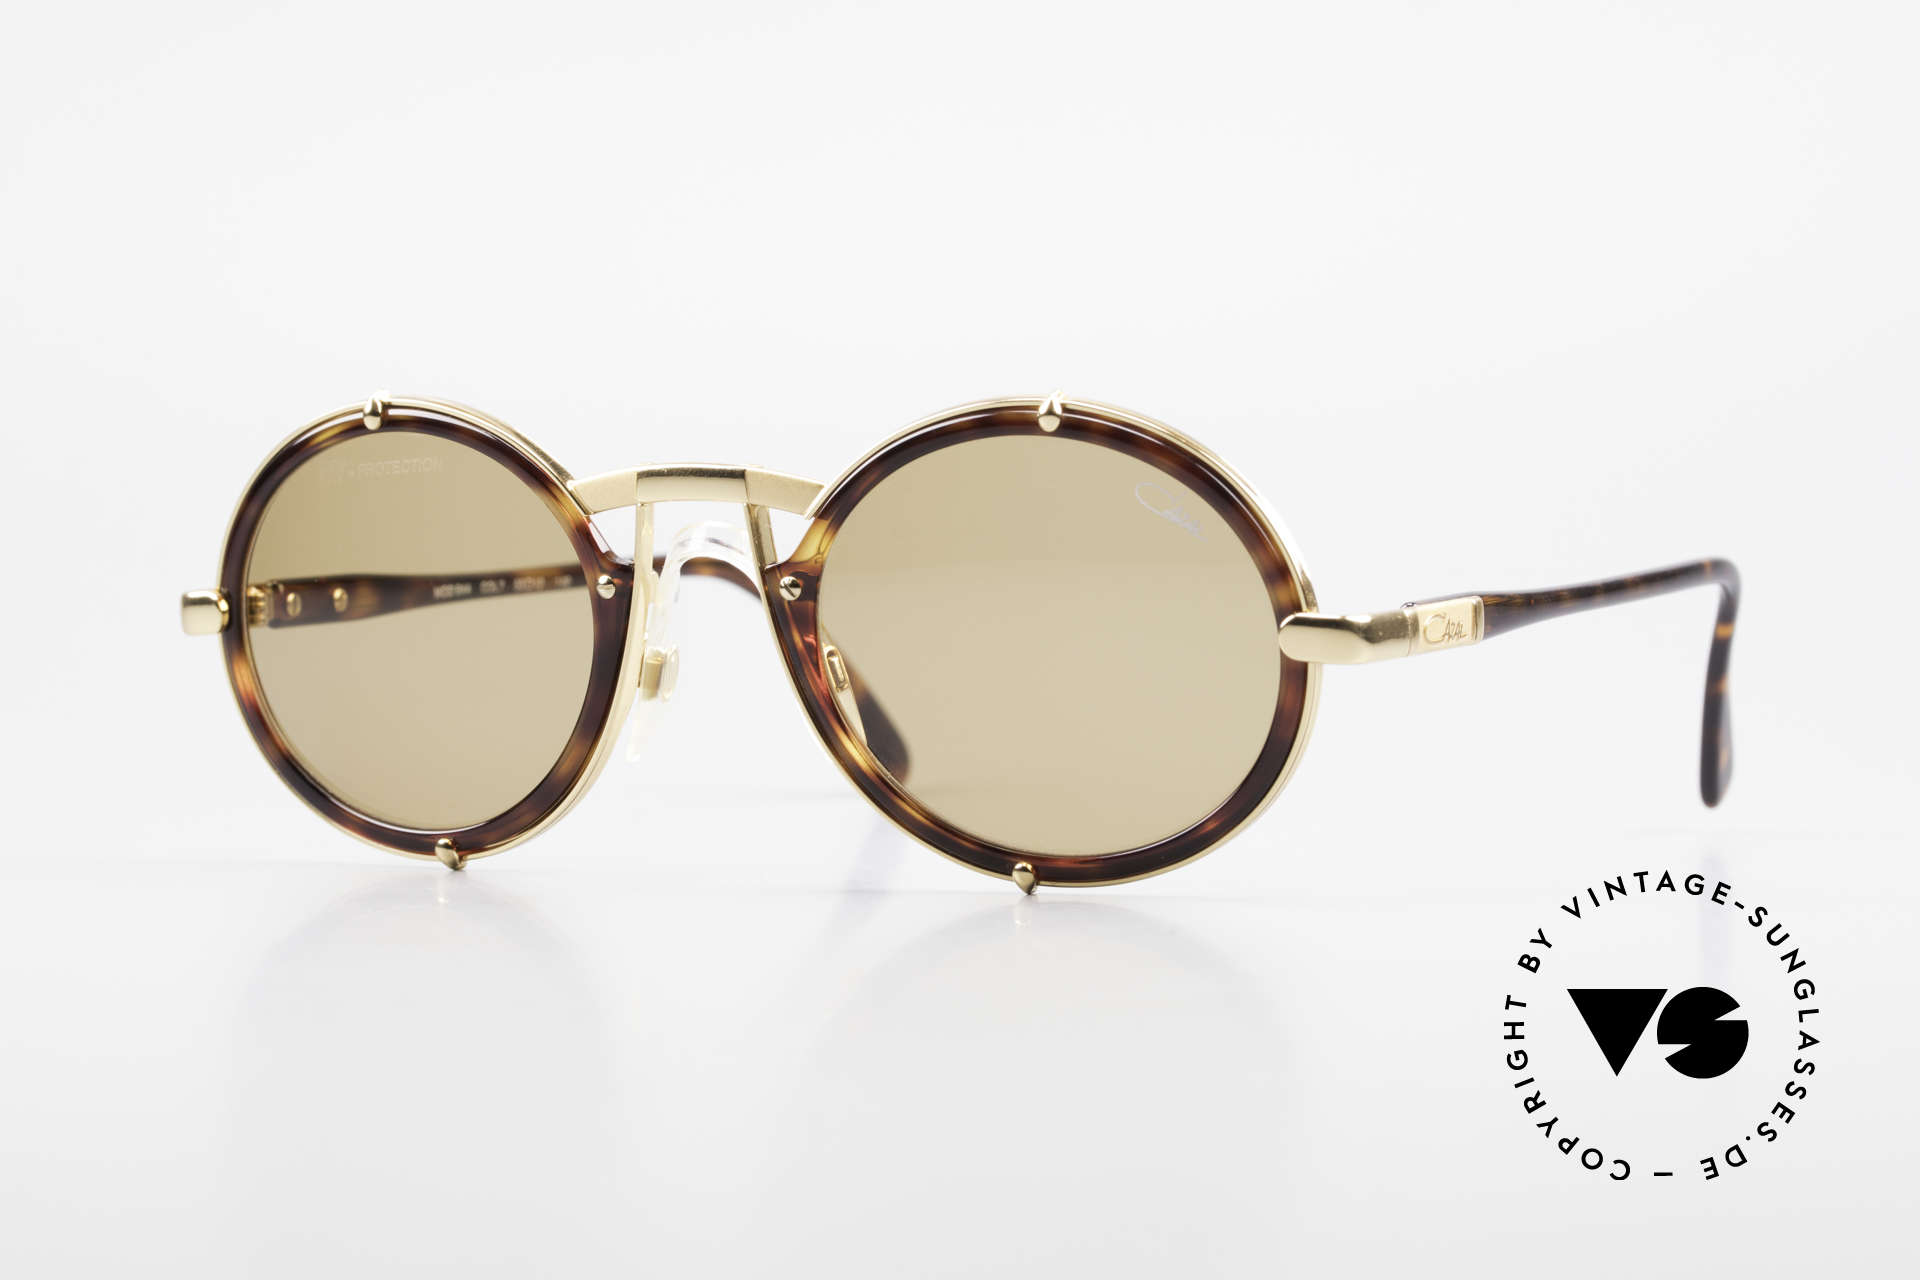 Cazal 644 Round Cazal 90's Sunglasses, vintage Cazal sunglasses from the early 1990's, Made for Men and Women